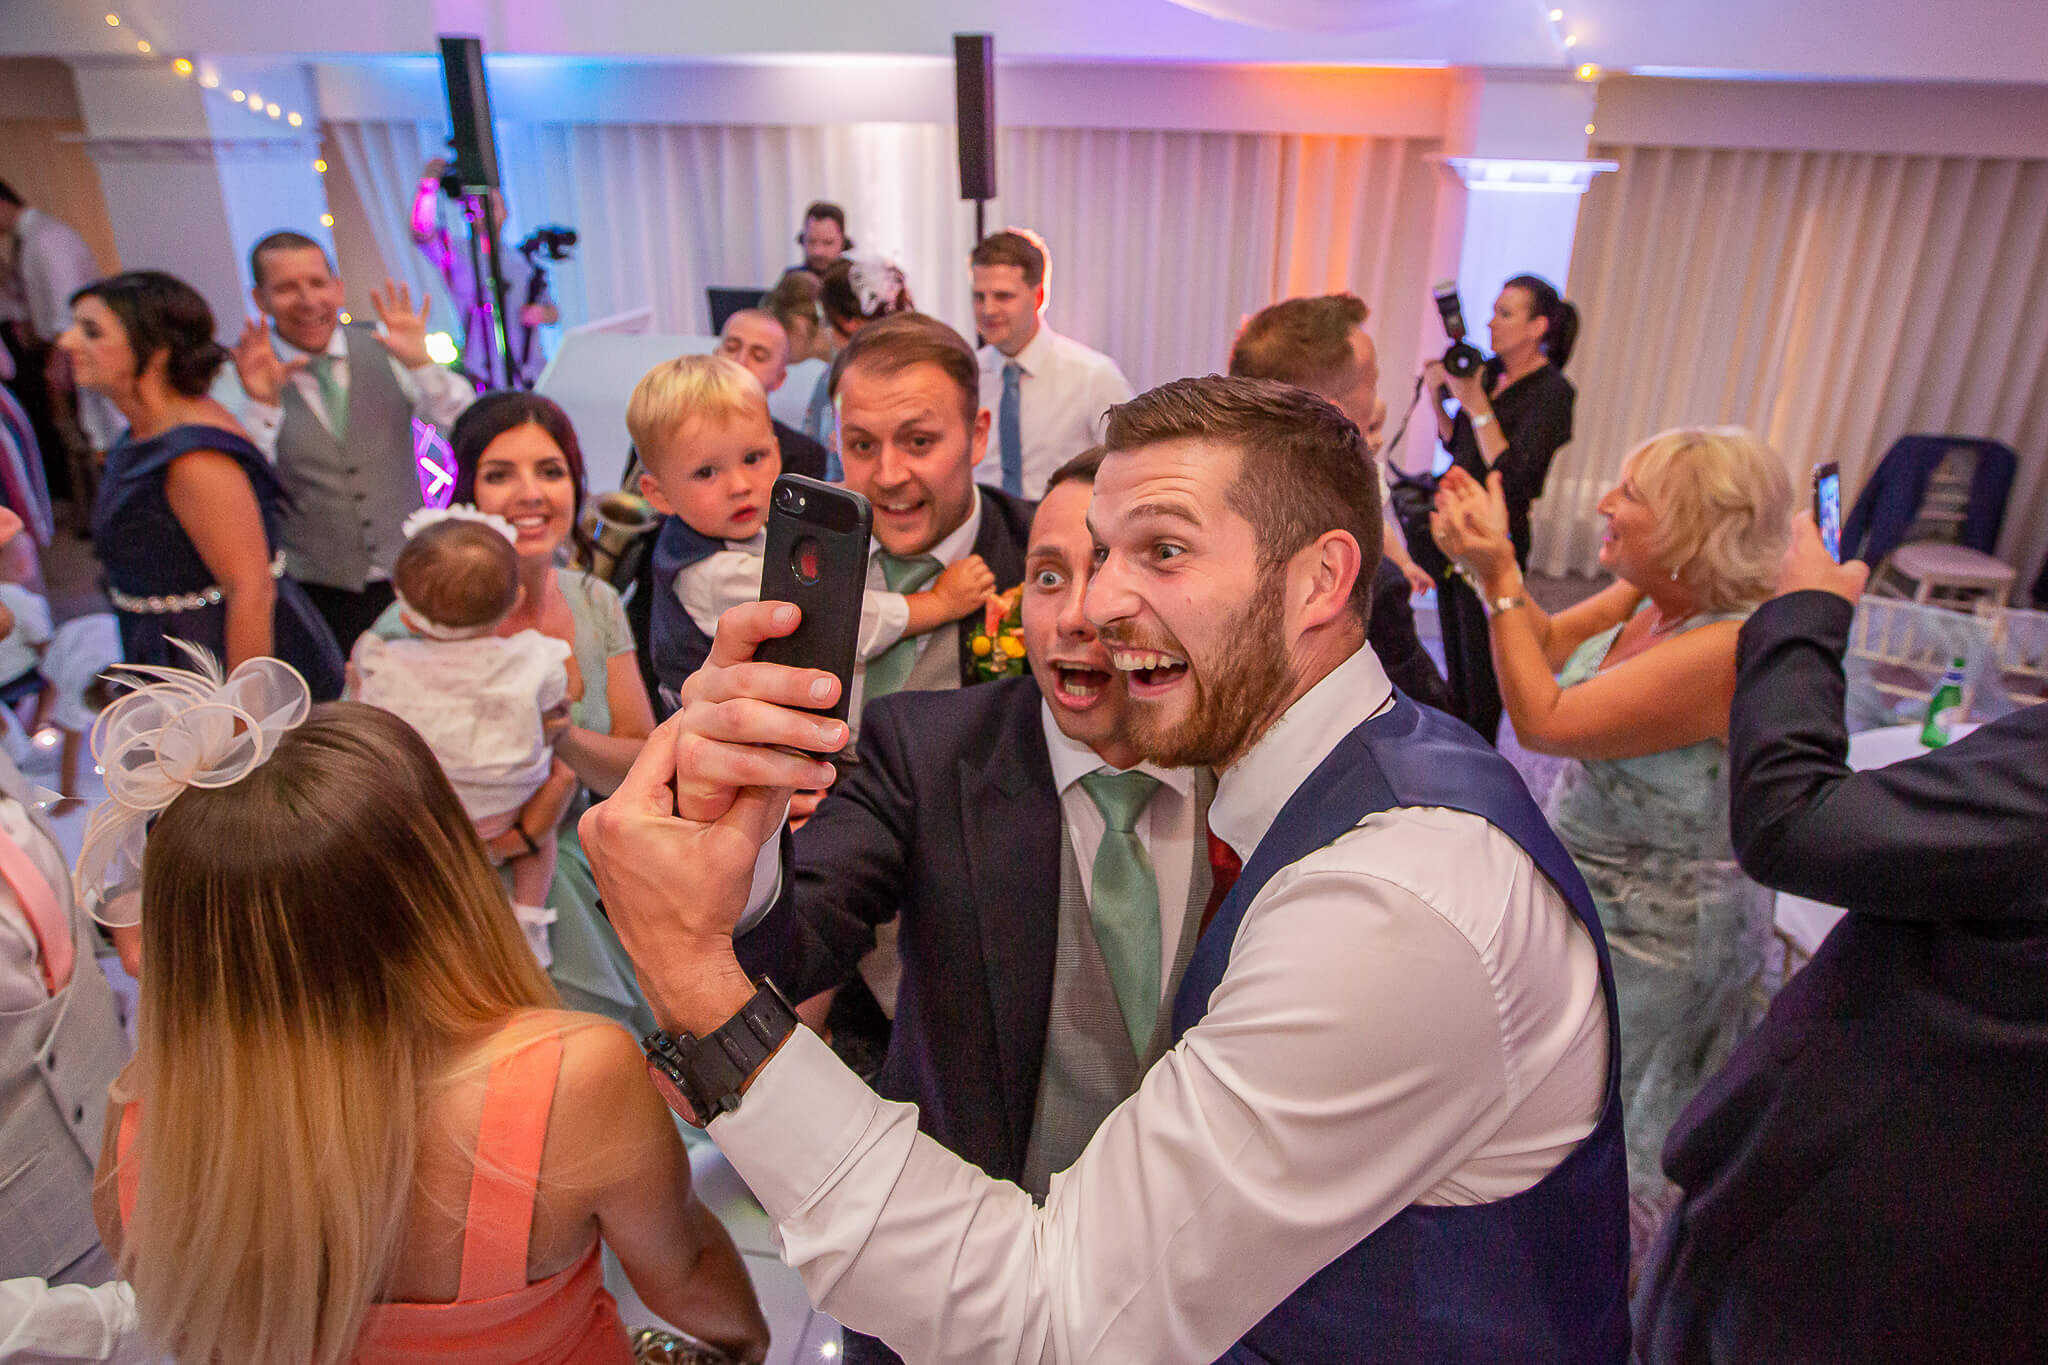 best-wedding-photographers-uk-europe-stanbury-photography-170